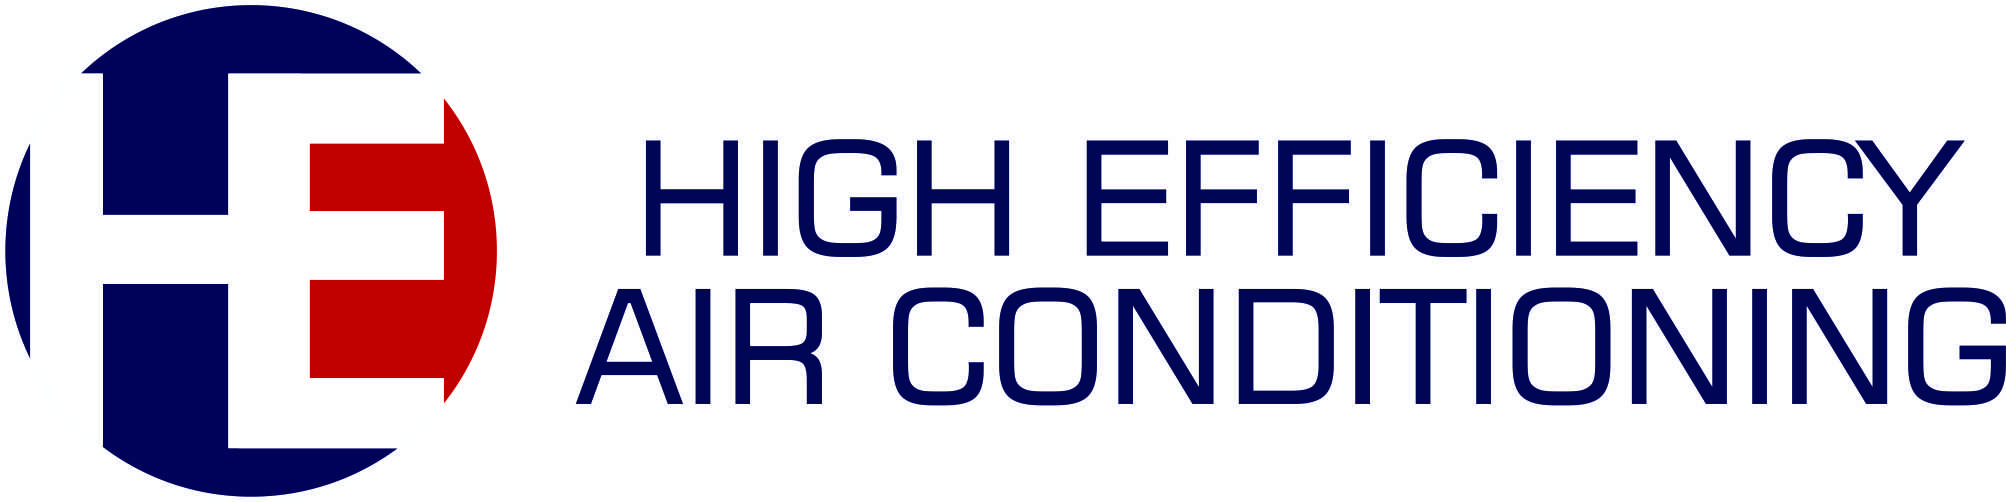 High Efficiency Air Conditioning Inc.